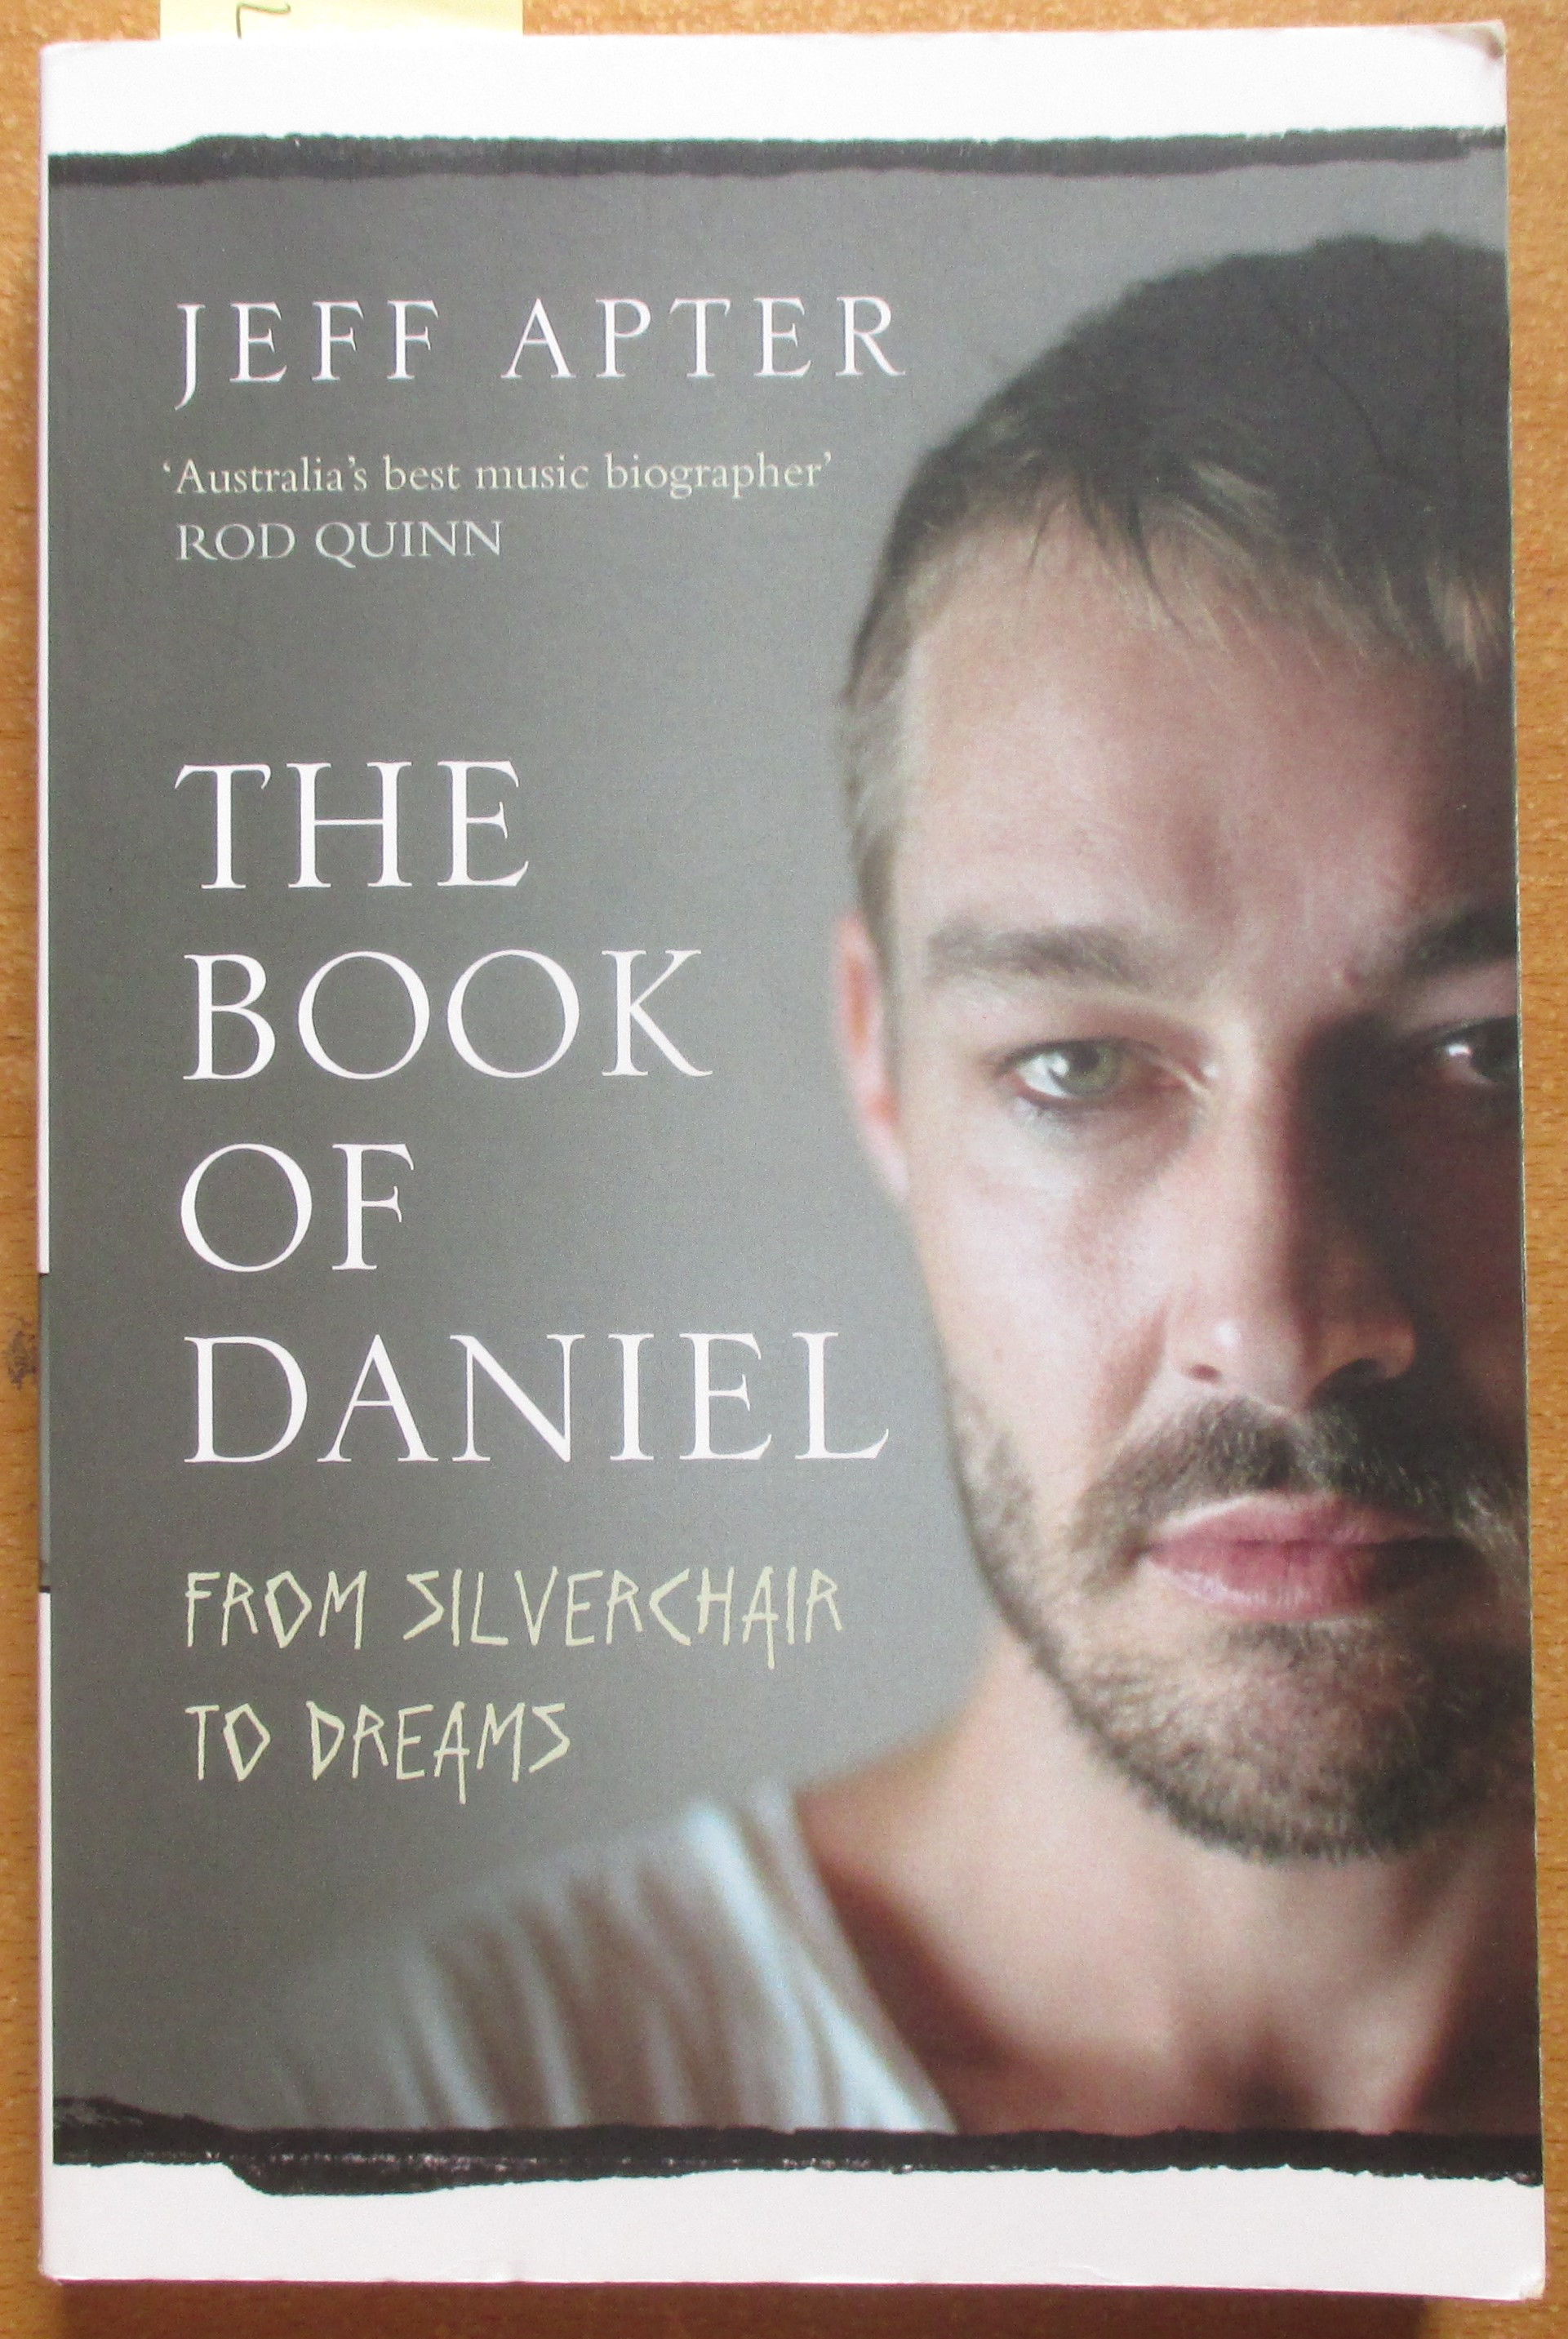 Image for Book of Daniel, The: From Silverchair to Dreams